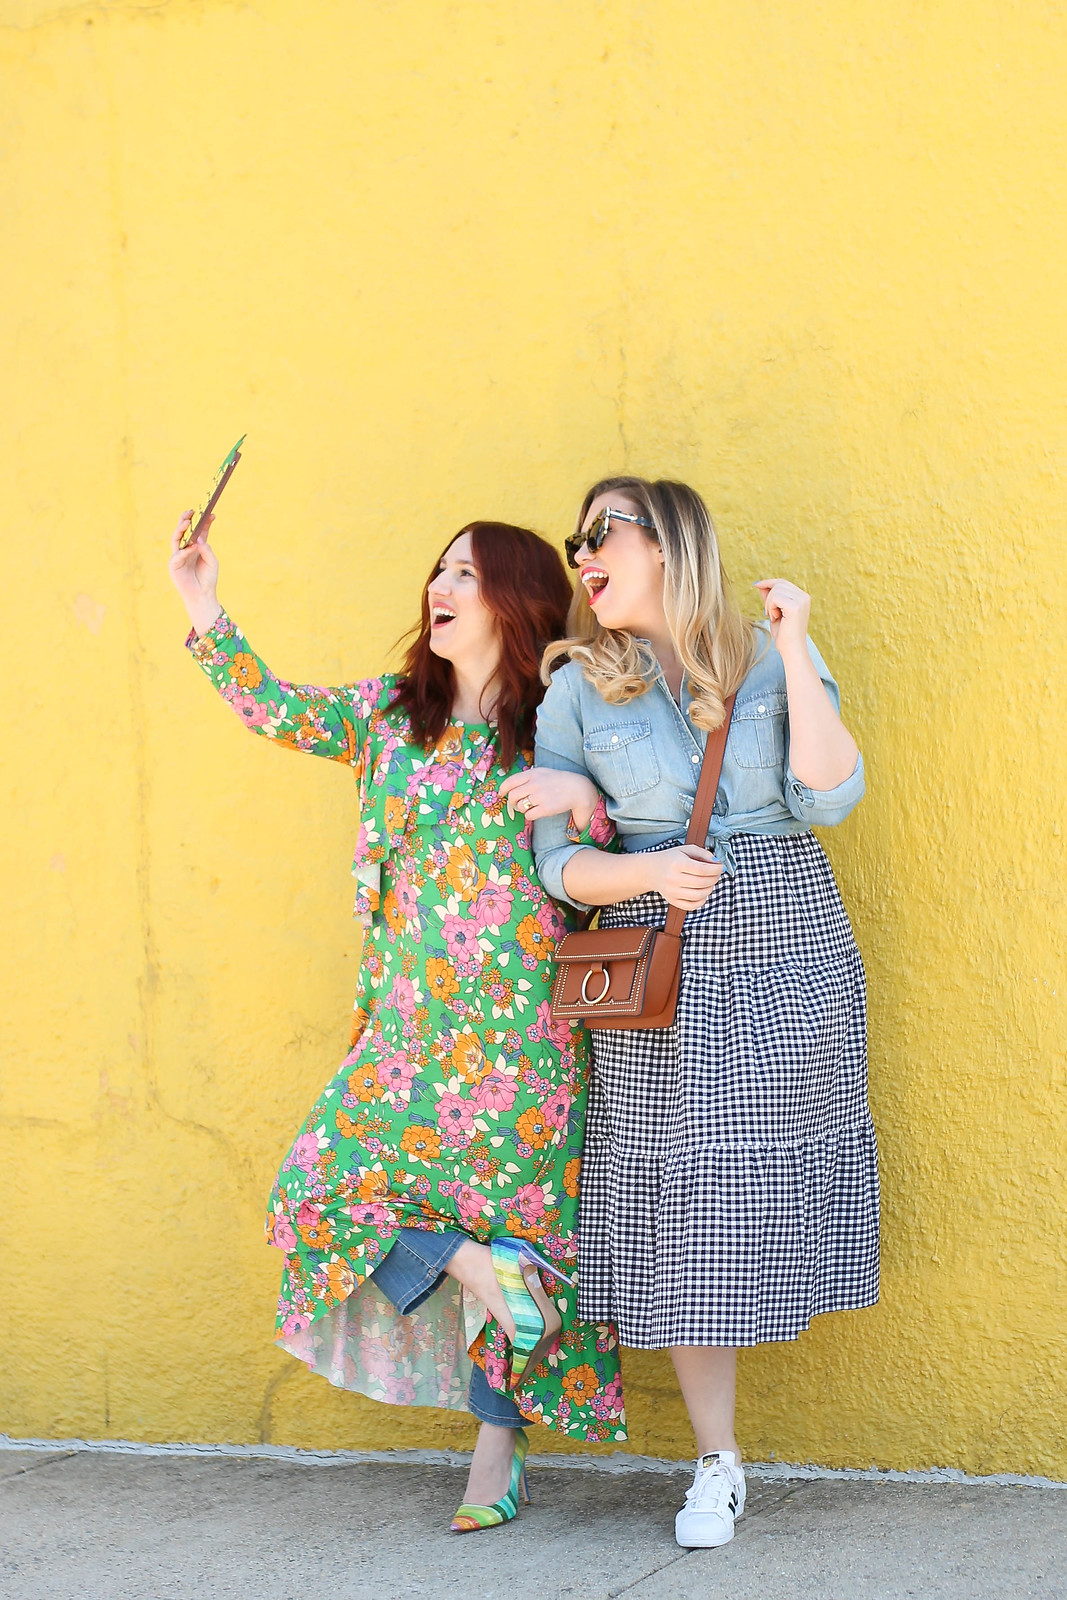 Bloggers Taking a Selfie Yellow Wall New York City Floral Dress Gingham Dress Fashion Blogger Friends